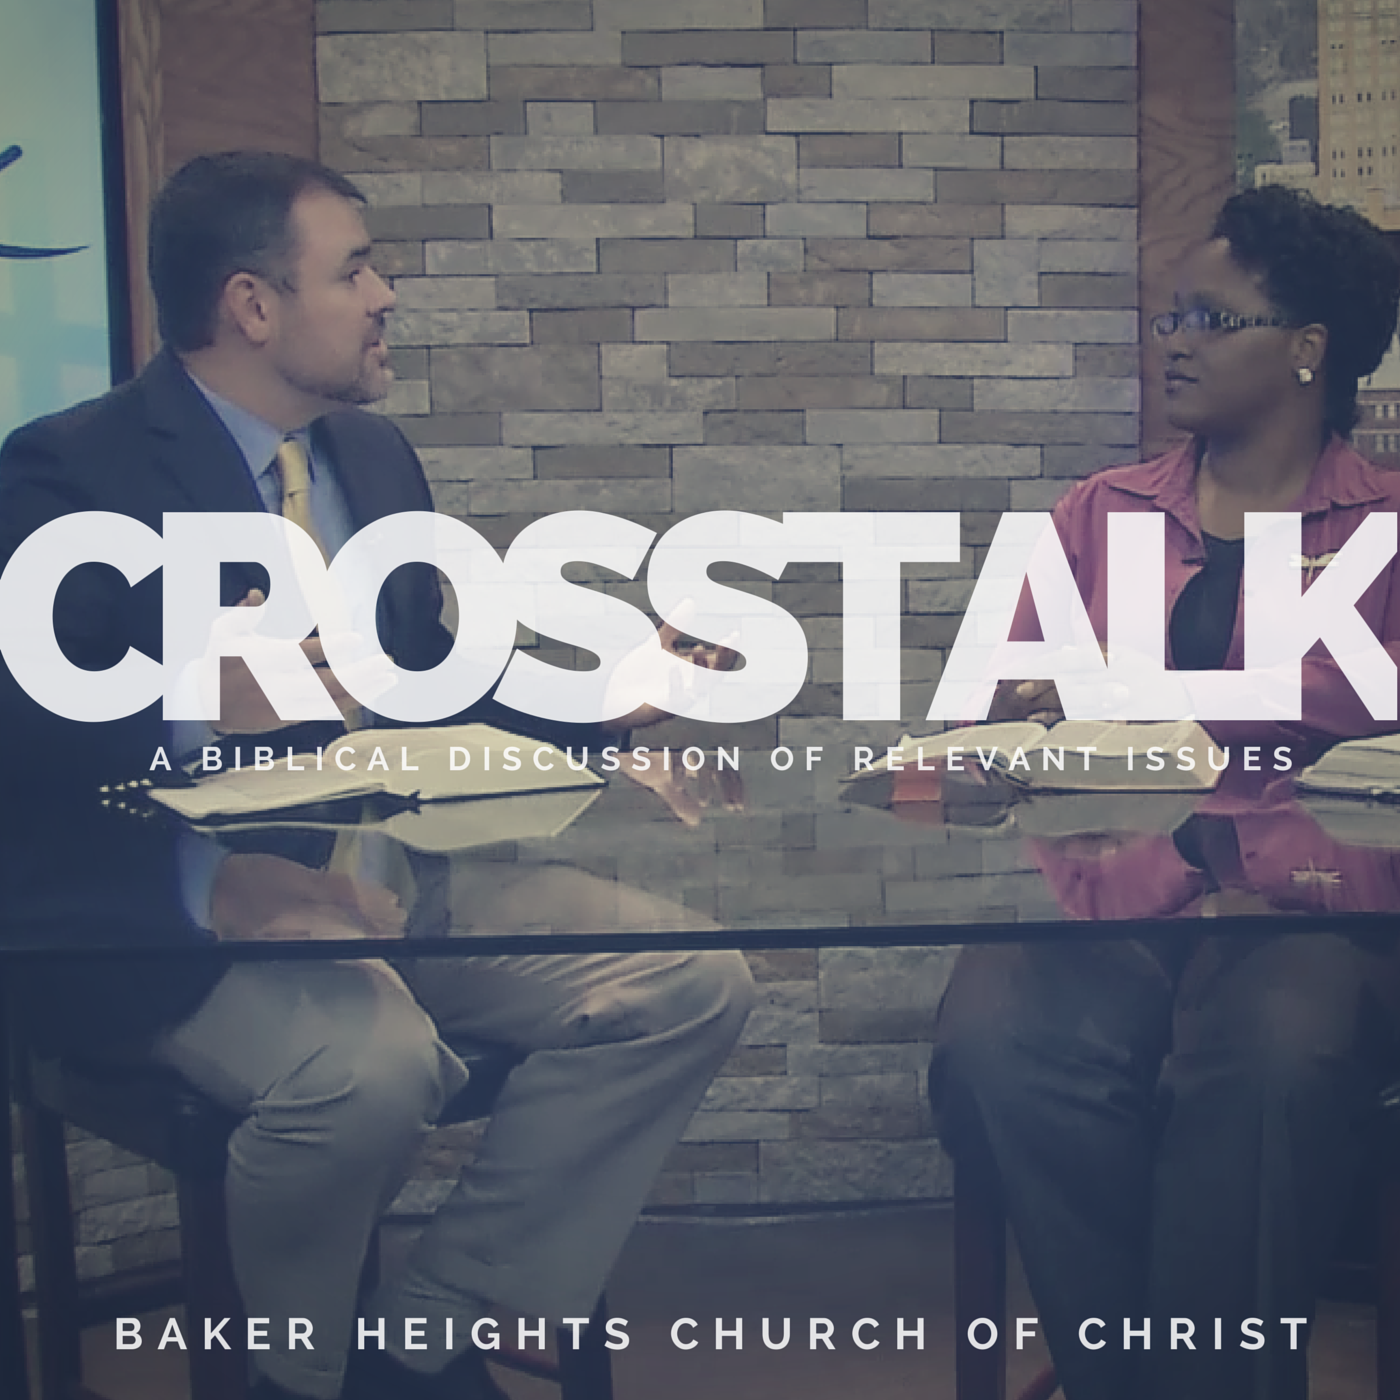 Baker Heights CrossTalk